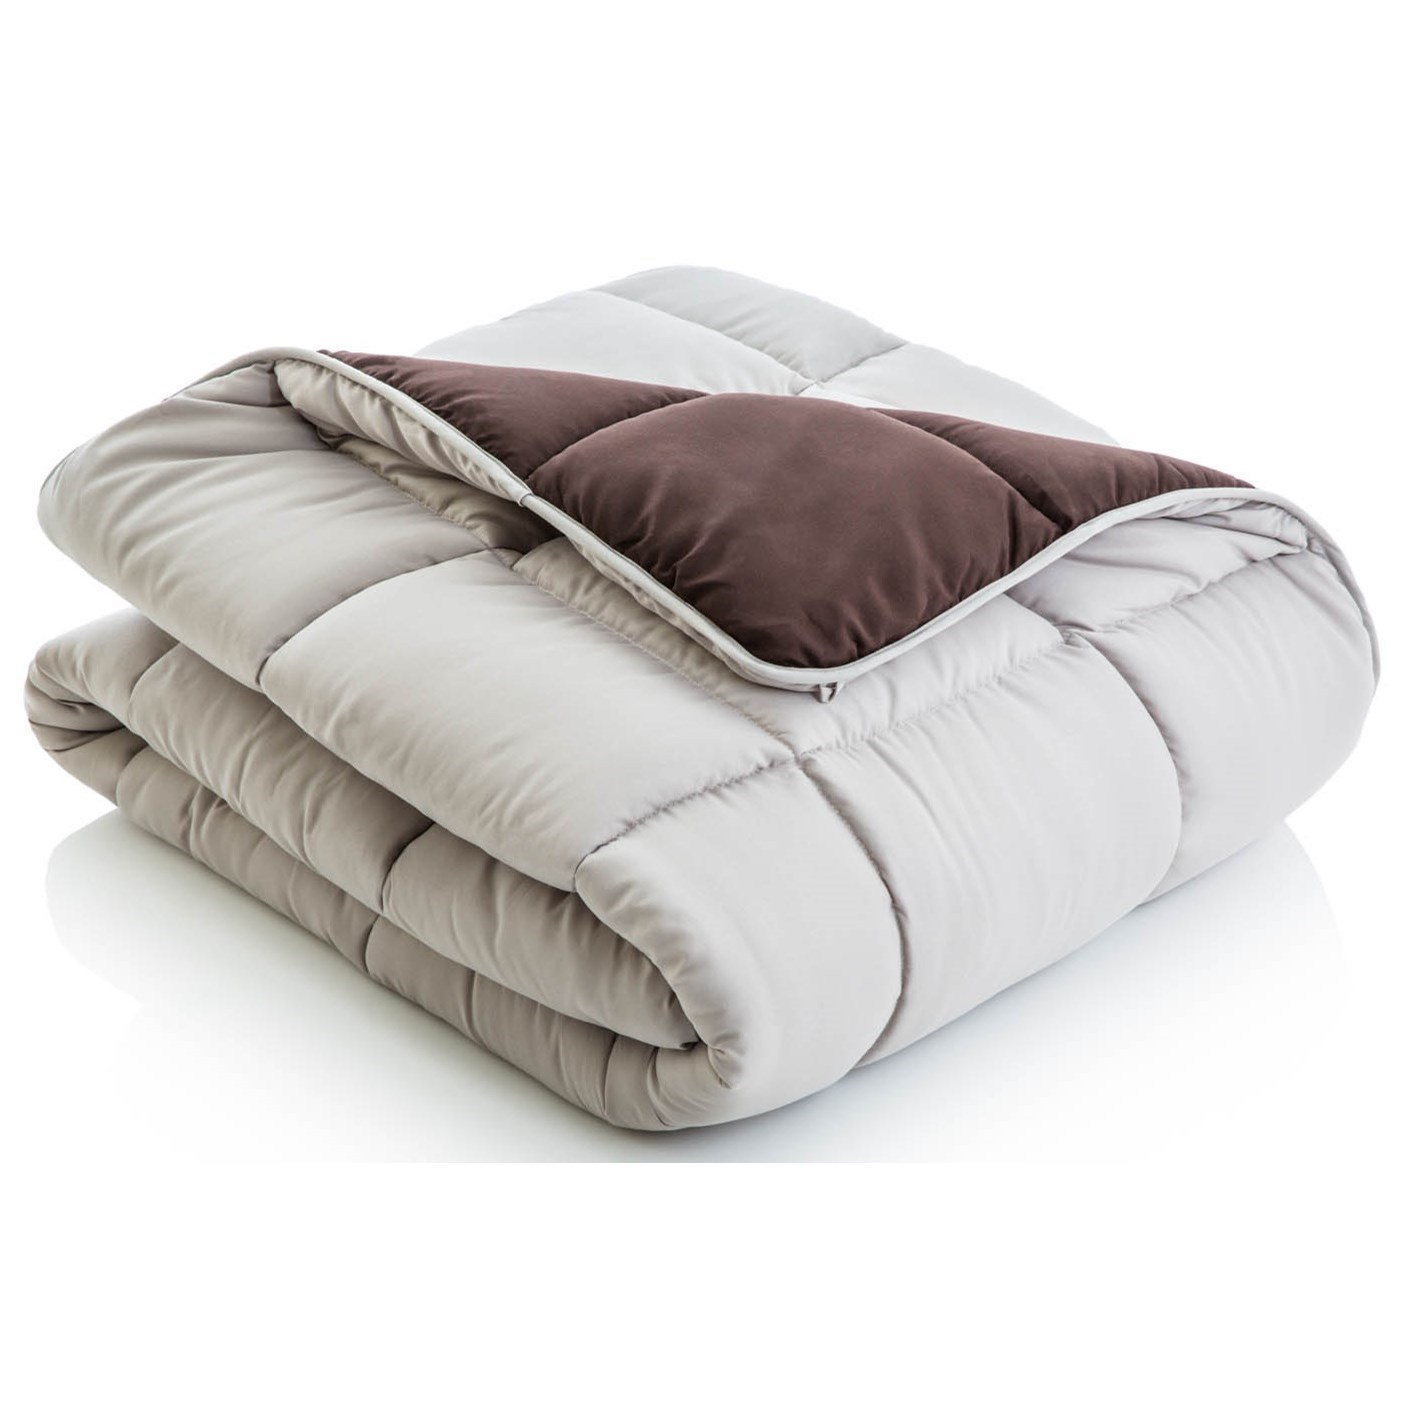 Malouf Reversible Bed in a Bag King Reversible Bed in a Bag - Item Number: MA01KKDRCOBB